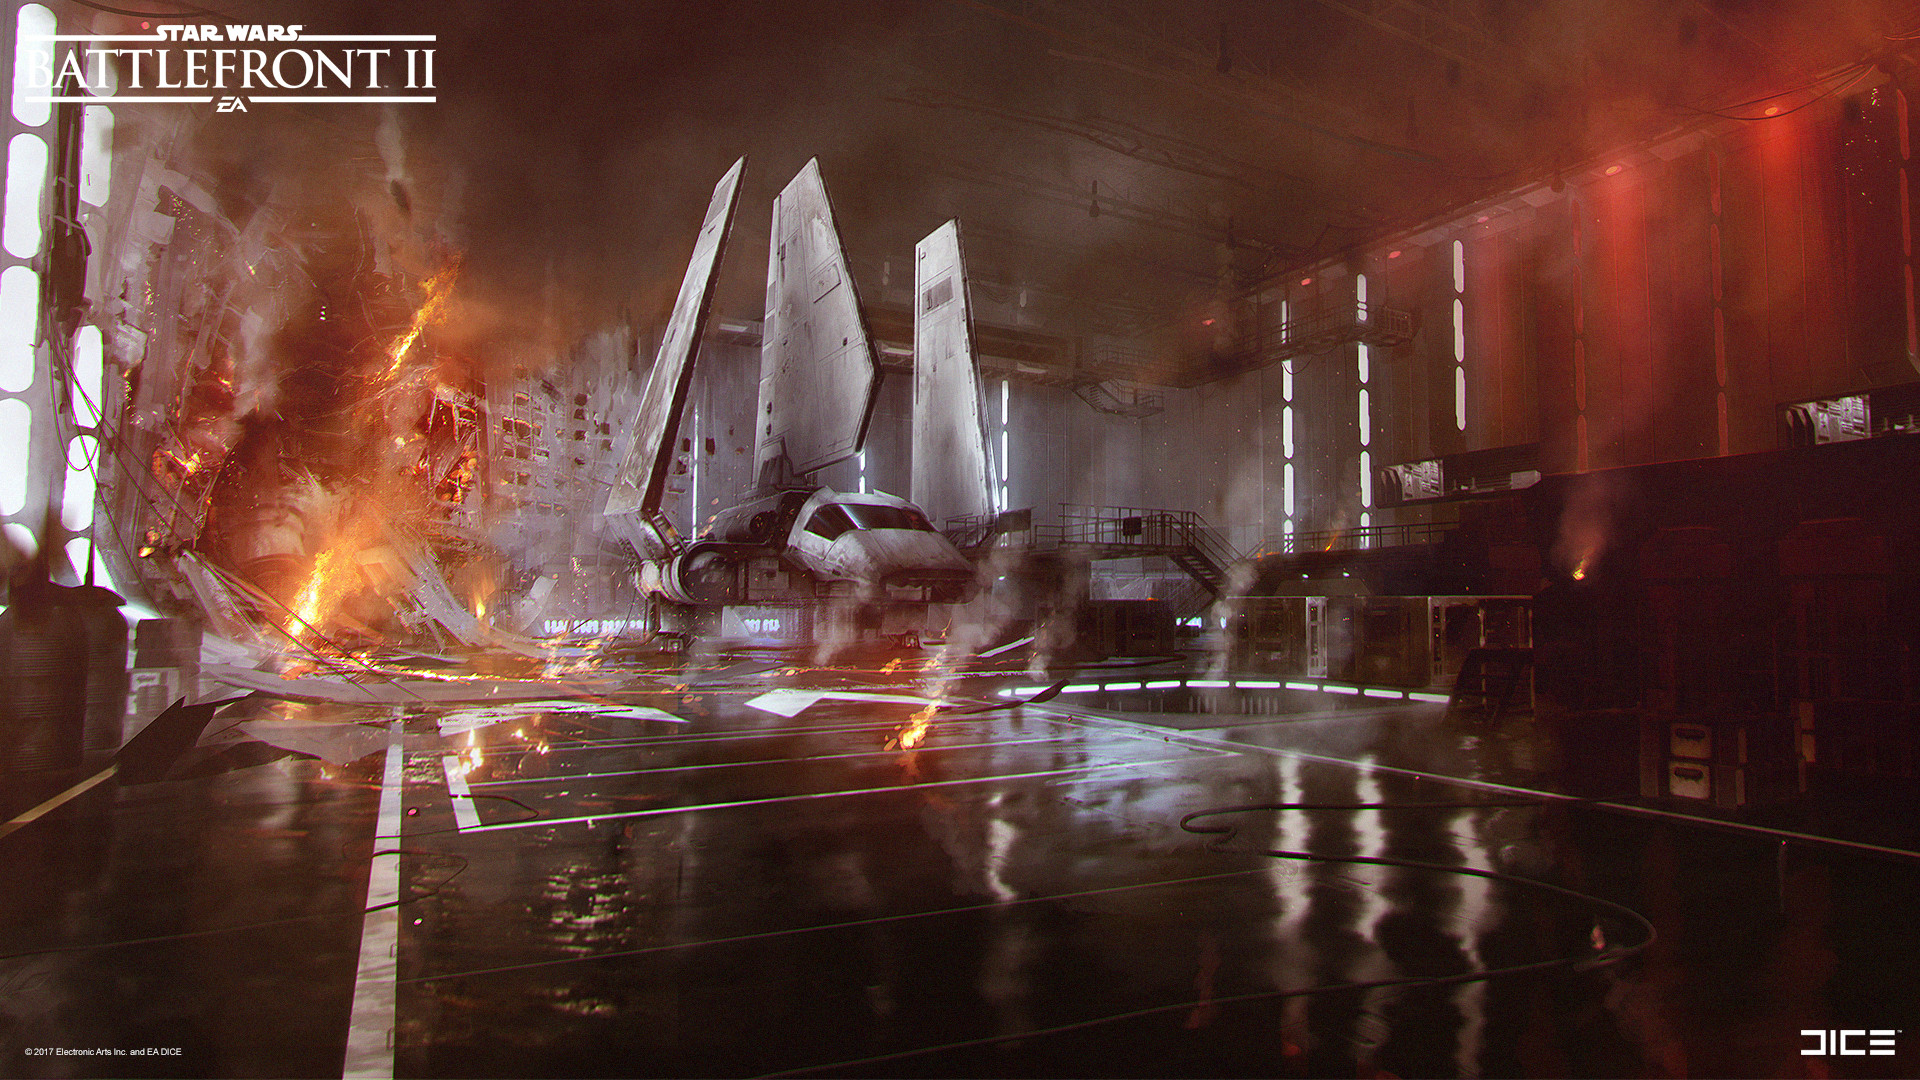 Star Wars Battlefront 2 Concept art - Death Star II